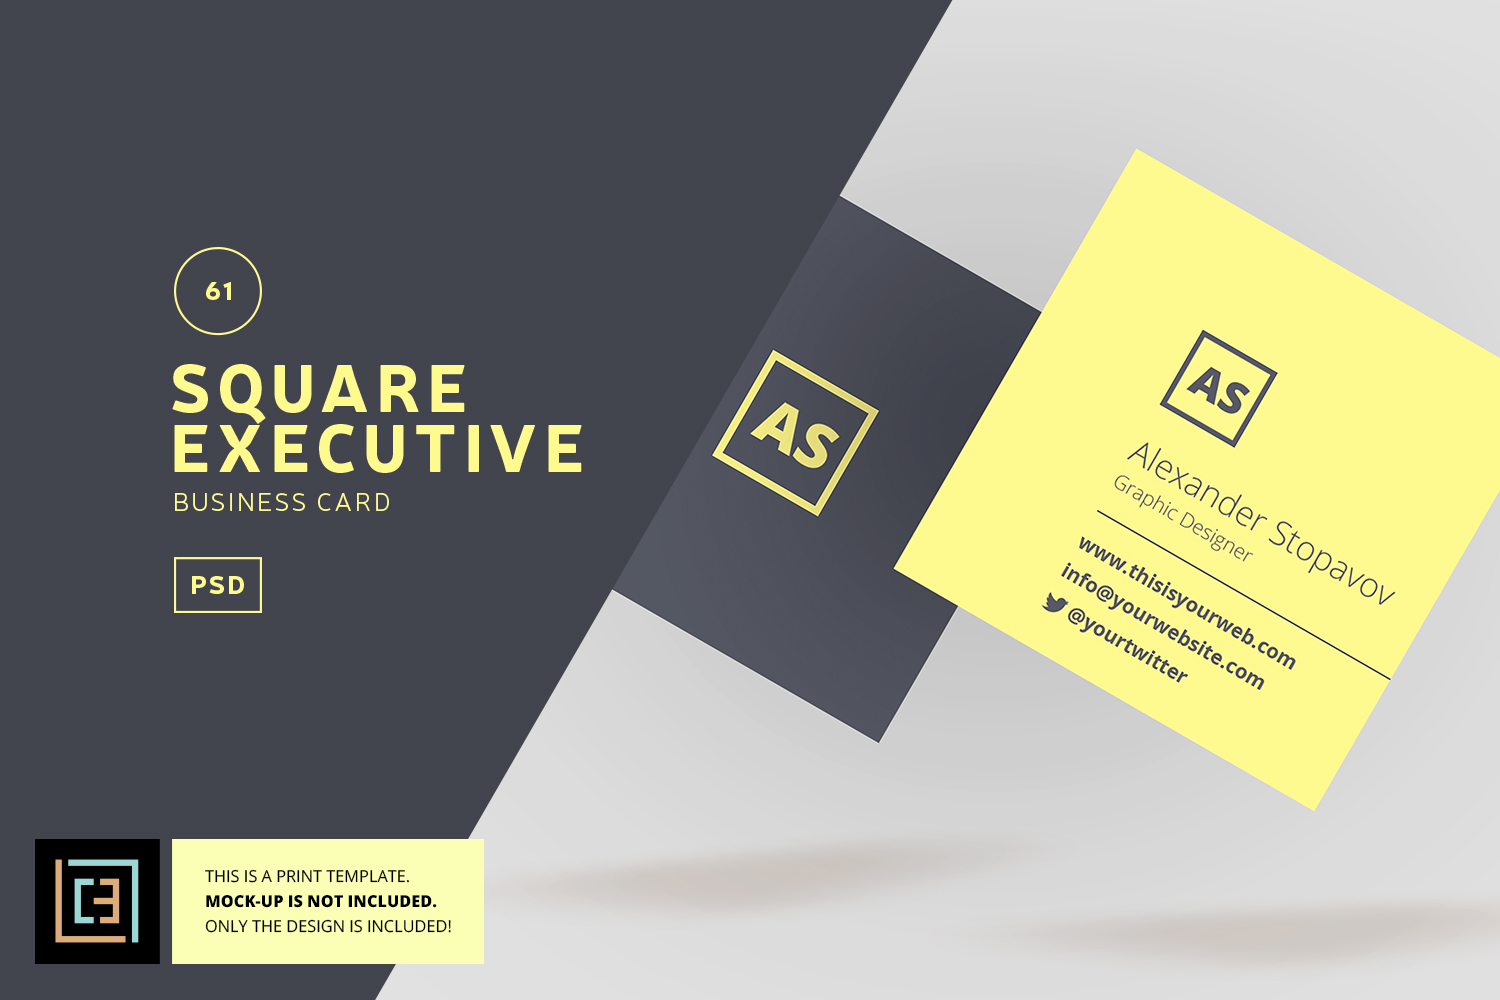 Square executive business card bc061 design bundles square executive business card bc061 example image 1 reheart Choice Image